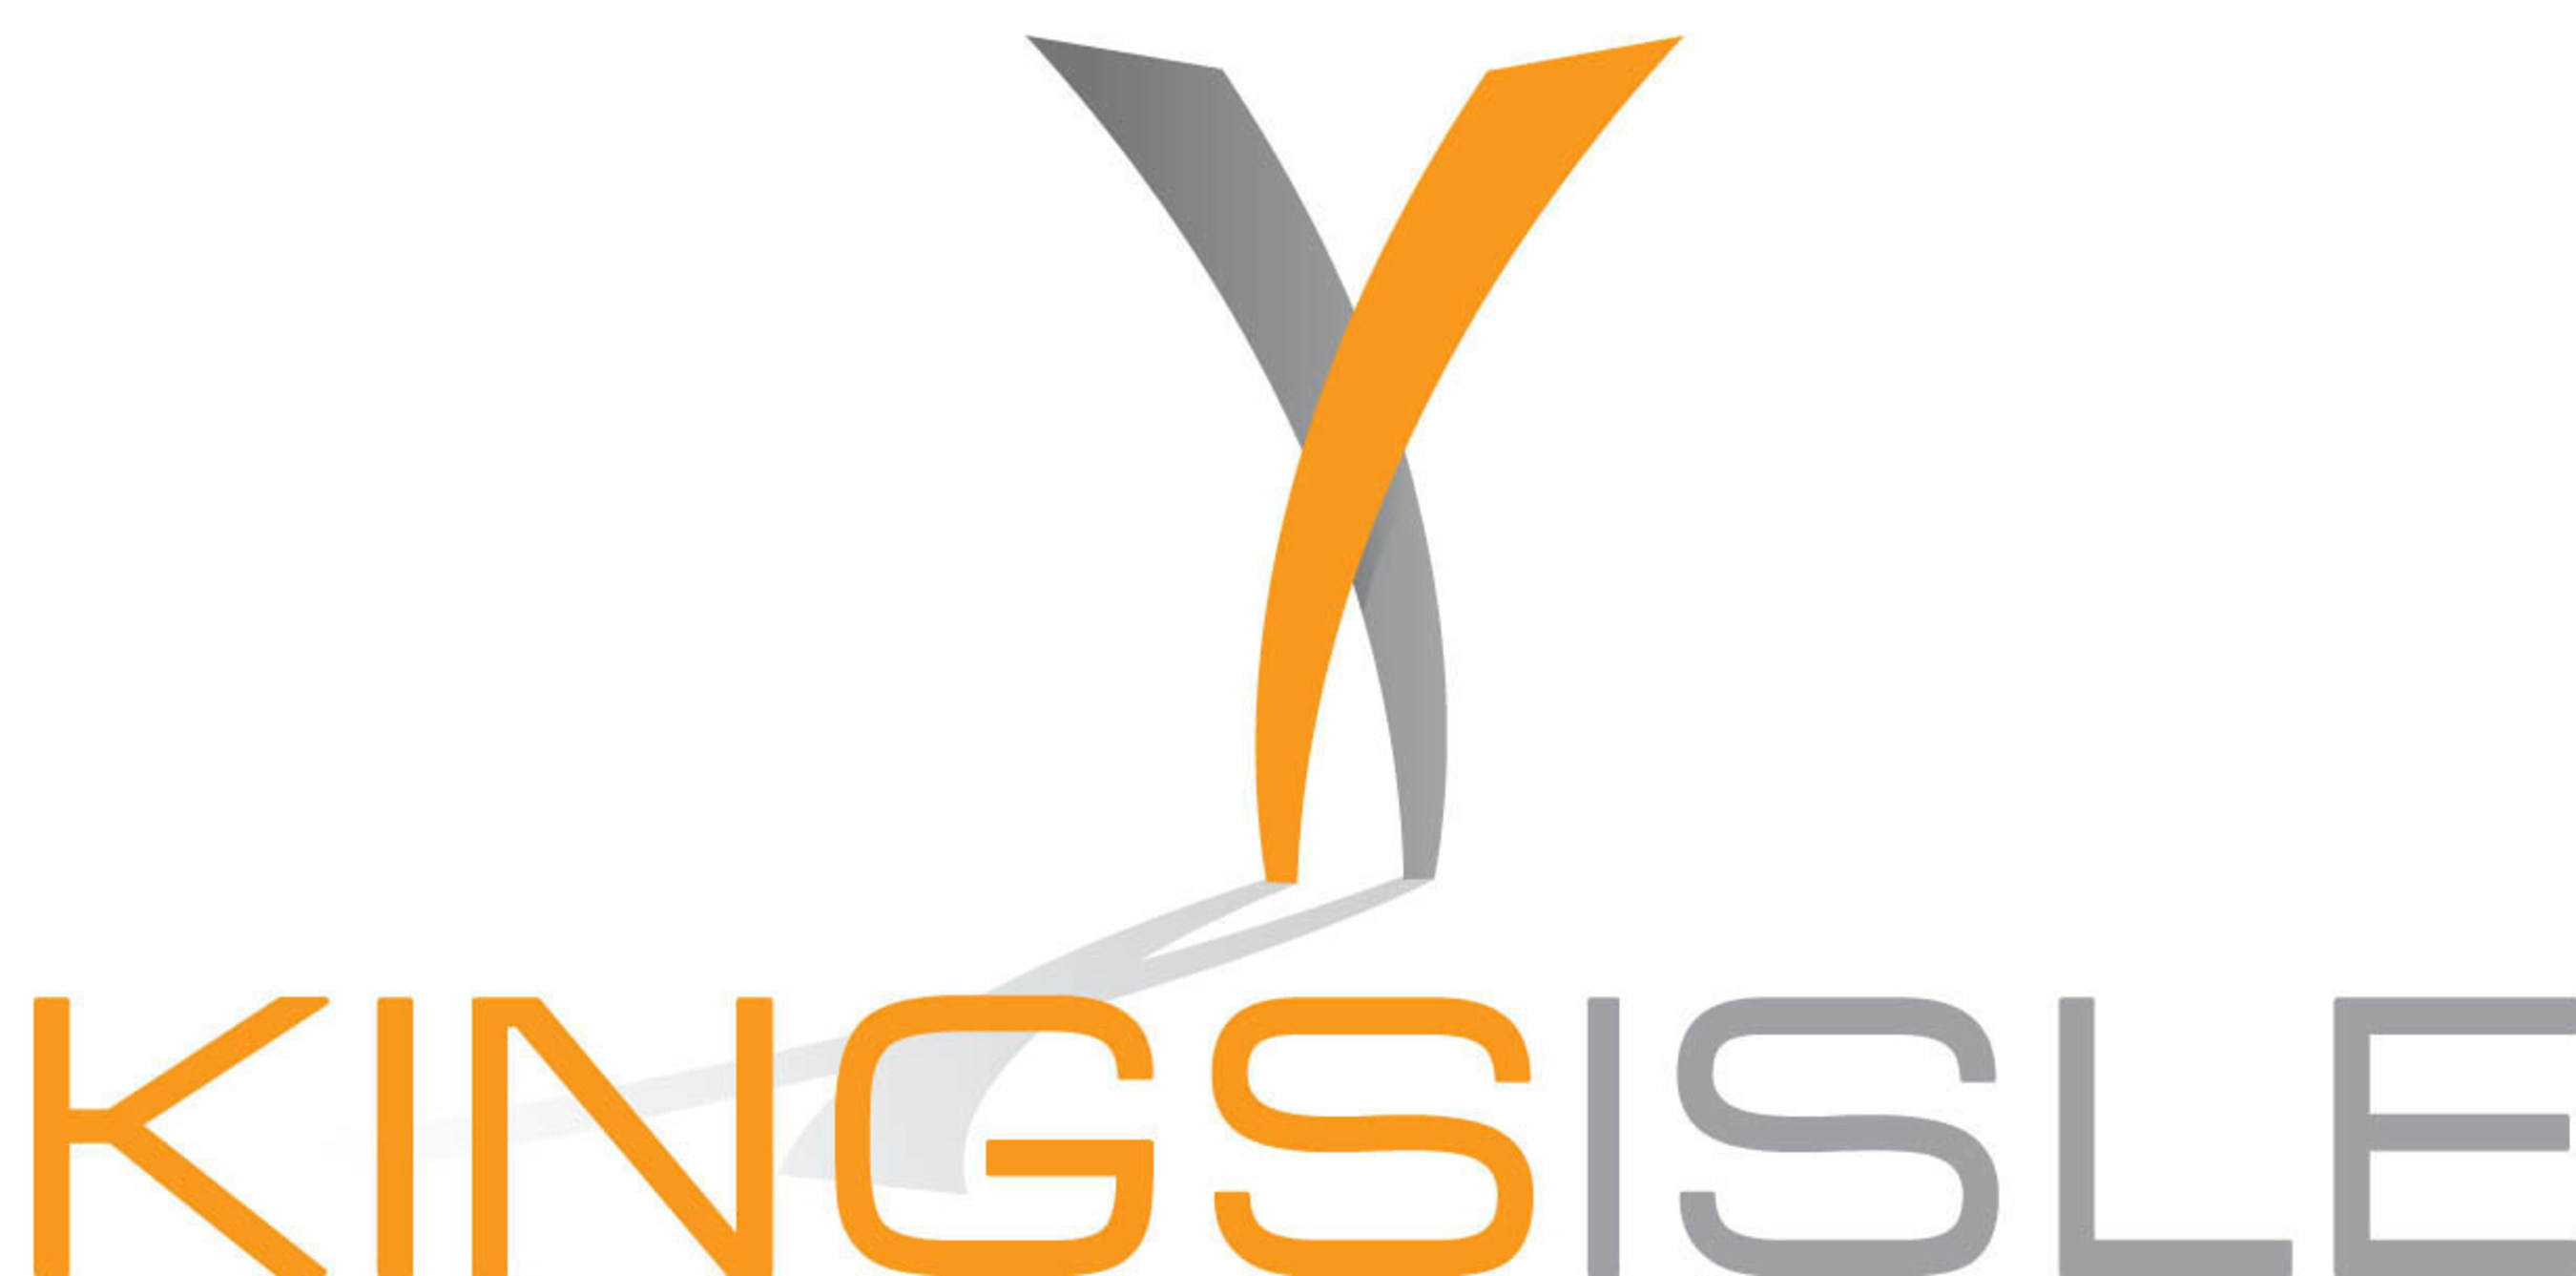 KingsIsle Entertainment is a developer and publisher that specializes in creating high-quality online games that provide entertainment for the entire family. Information about the company's games, which include core titles Wizard101 and Pirate101, can be found at http://www.kingsisle.com/corporate/products .